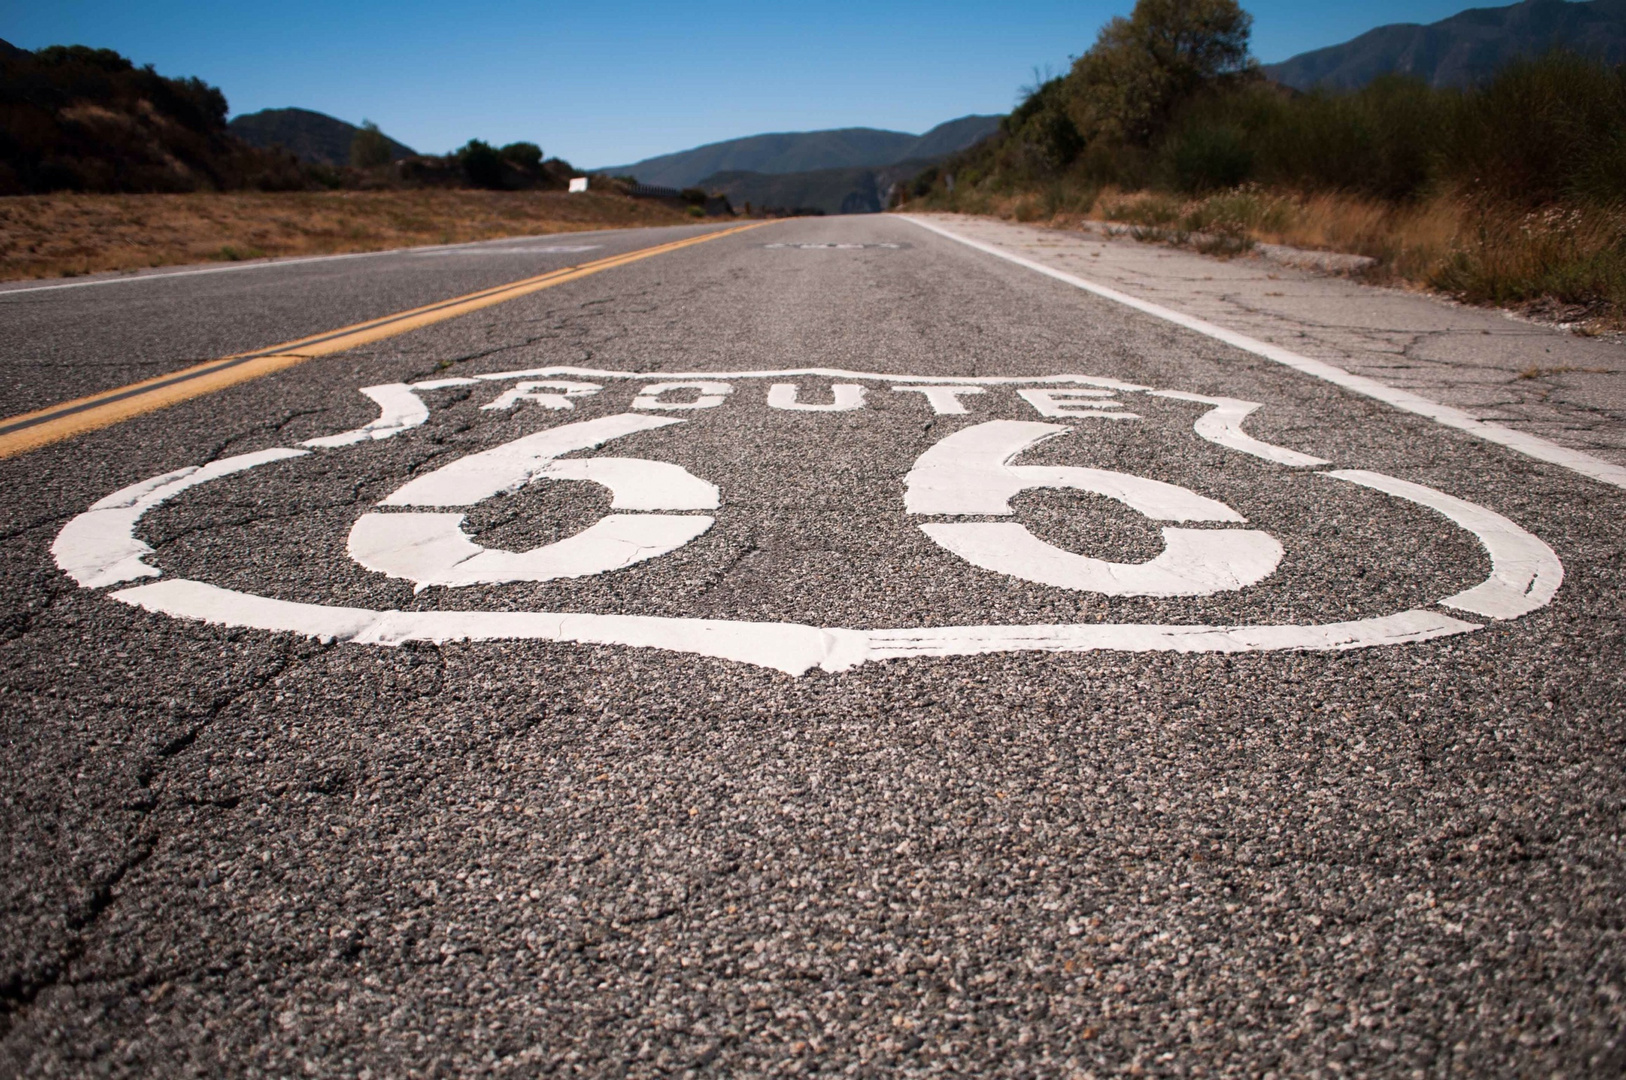 Get your kicks.... on Route 66